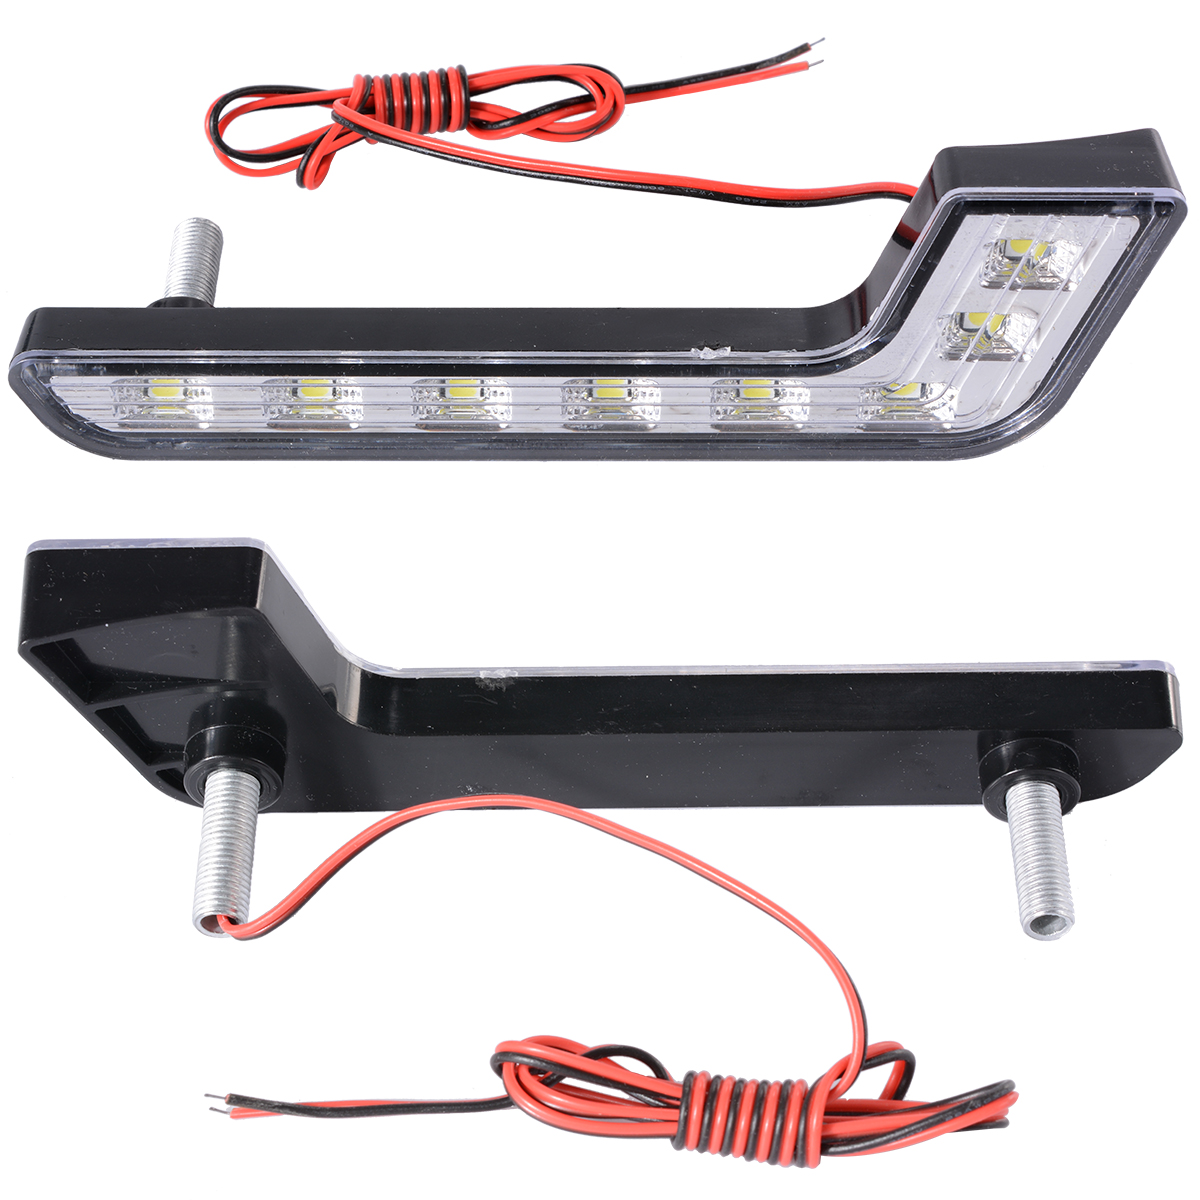 2x 6000k Car Daytime Running DRL Bright Driving Day Light Head Lamp 8 LED white